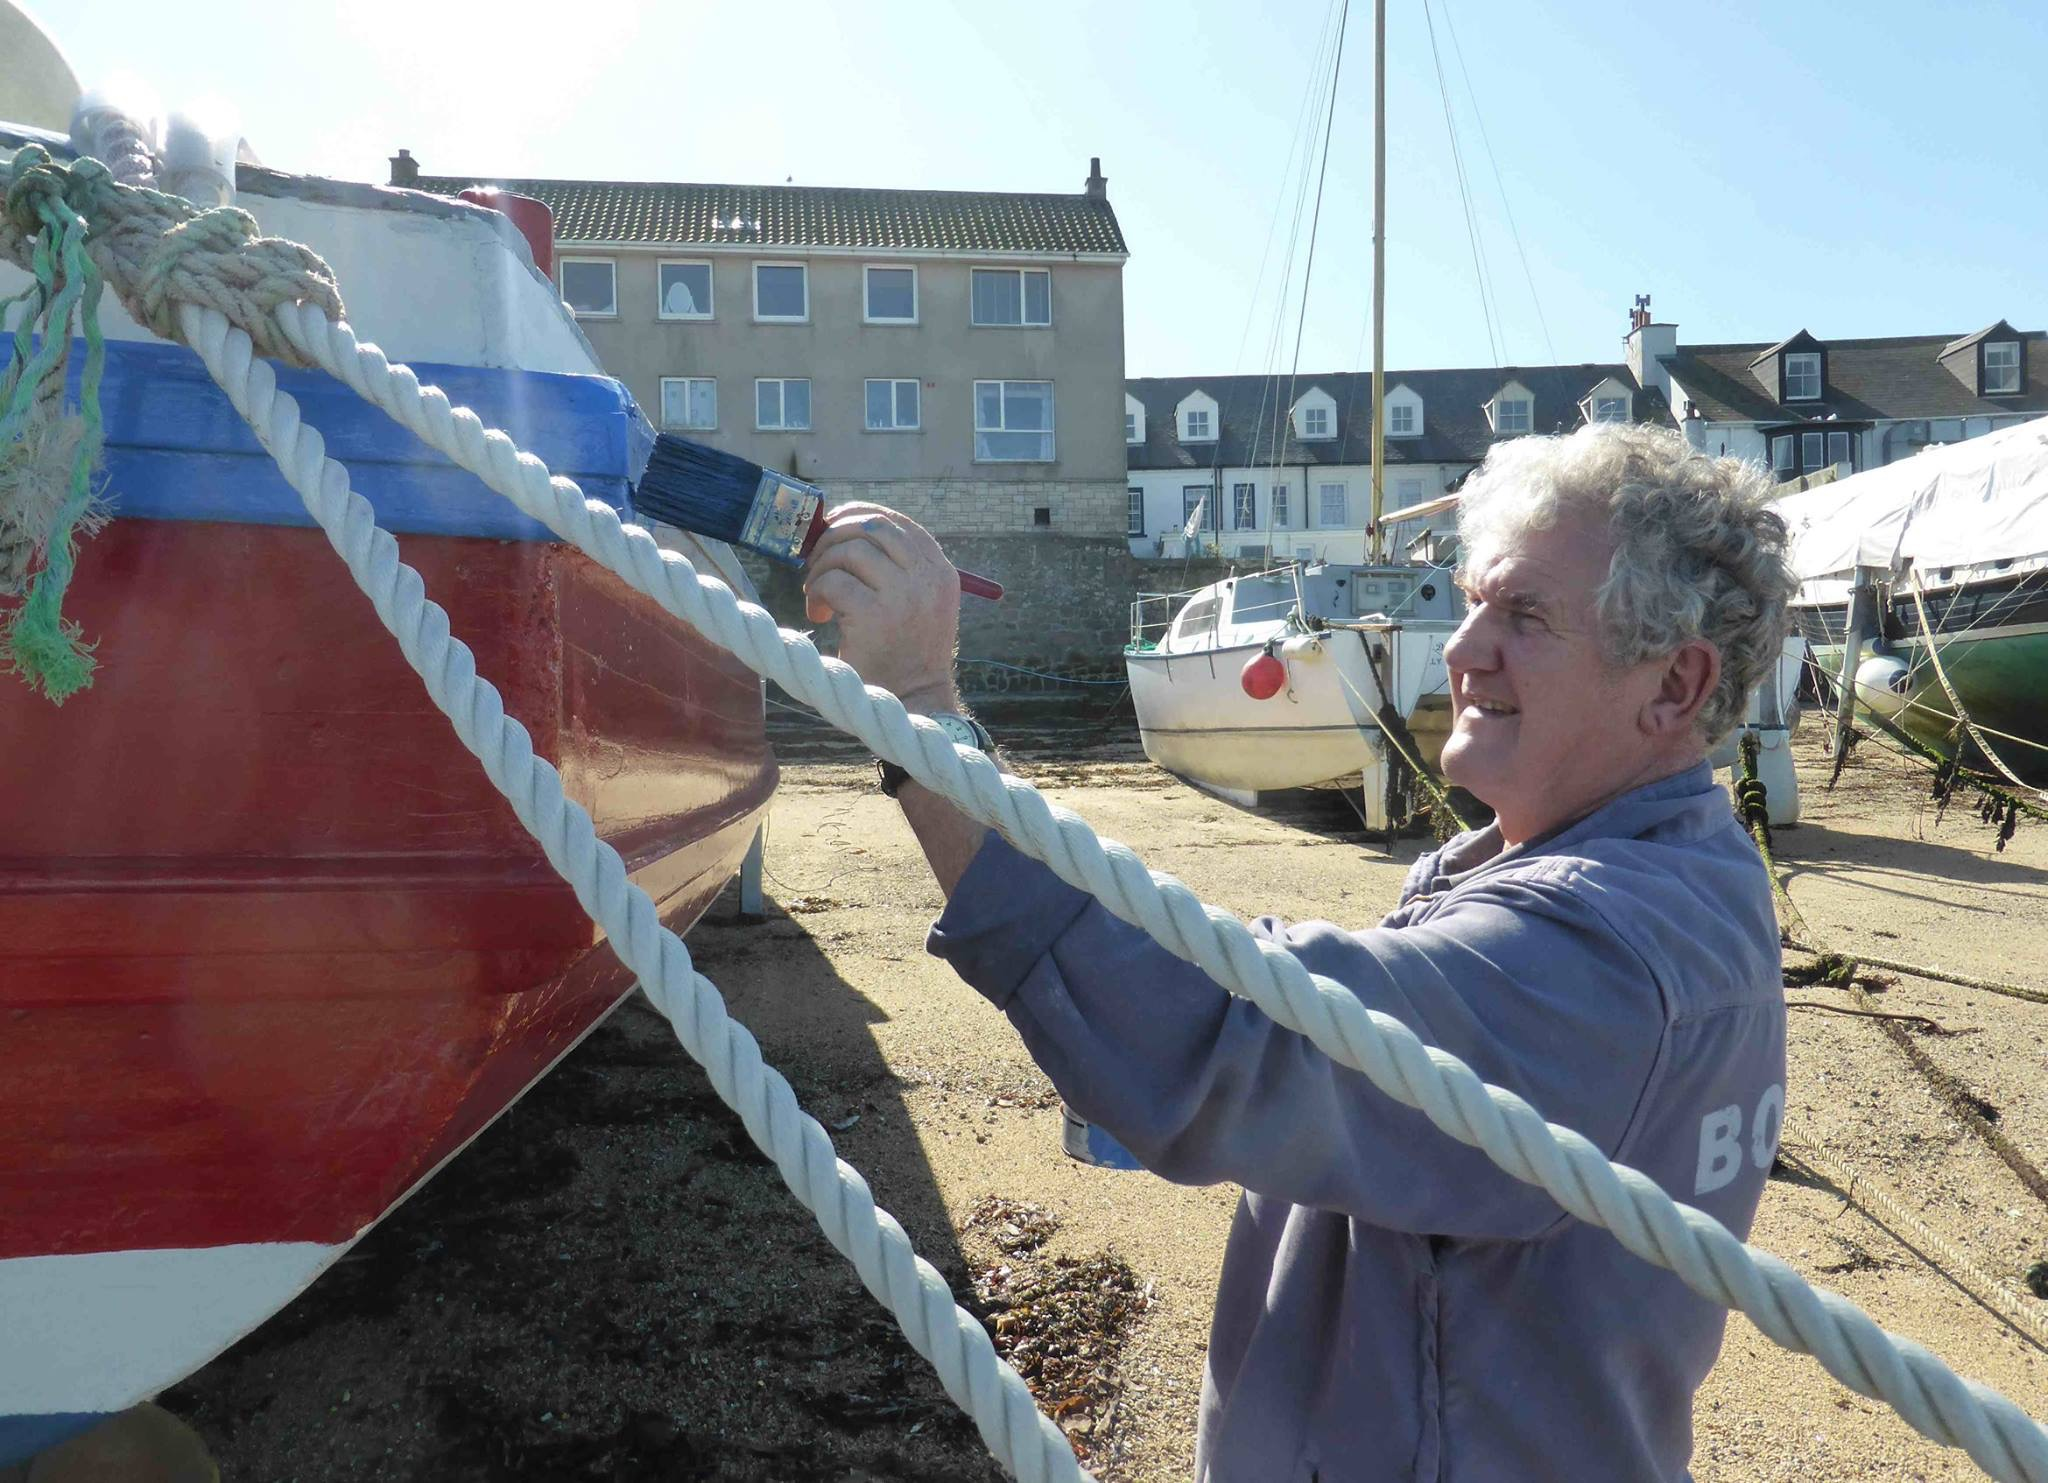 Fraser Hicks putting a final lick of paint on his vessel - Sea King.